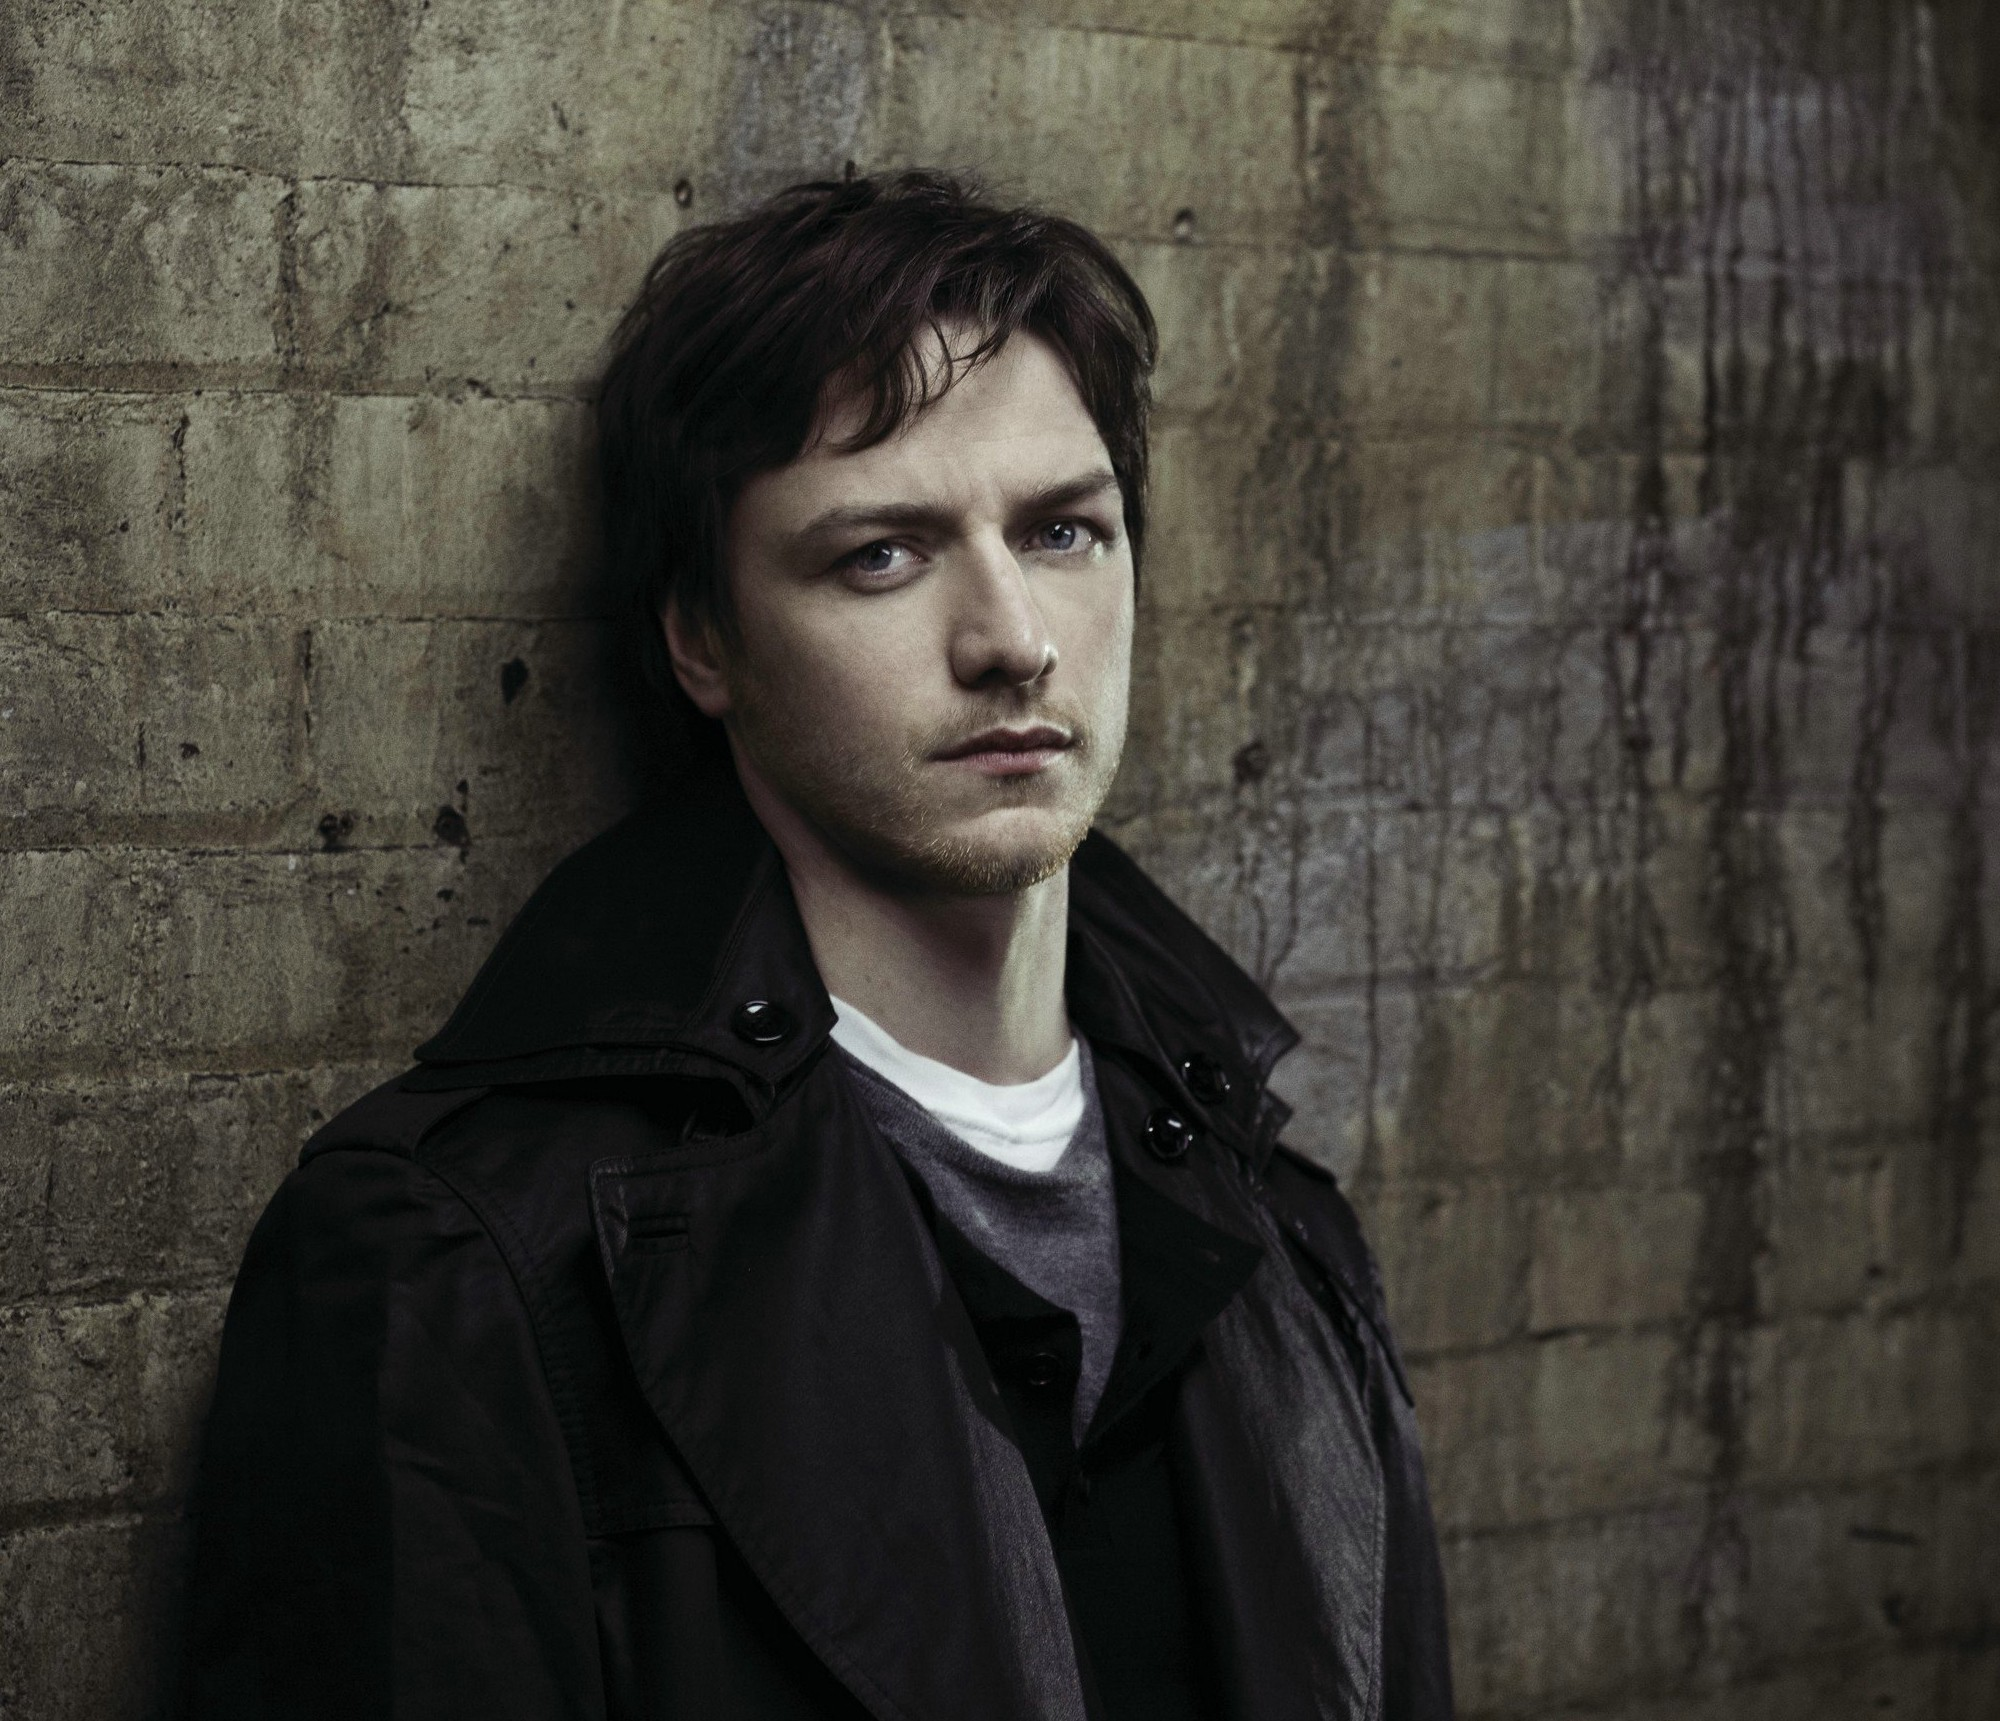 2000x1721 - James McAvoy Wallpapers 12